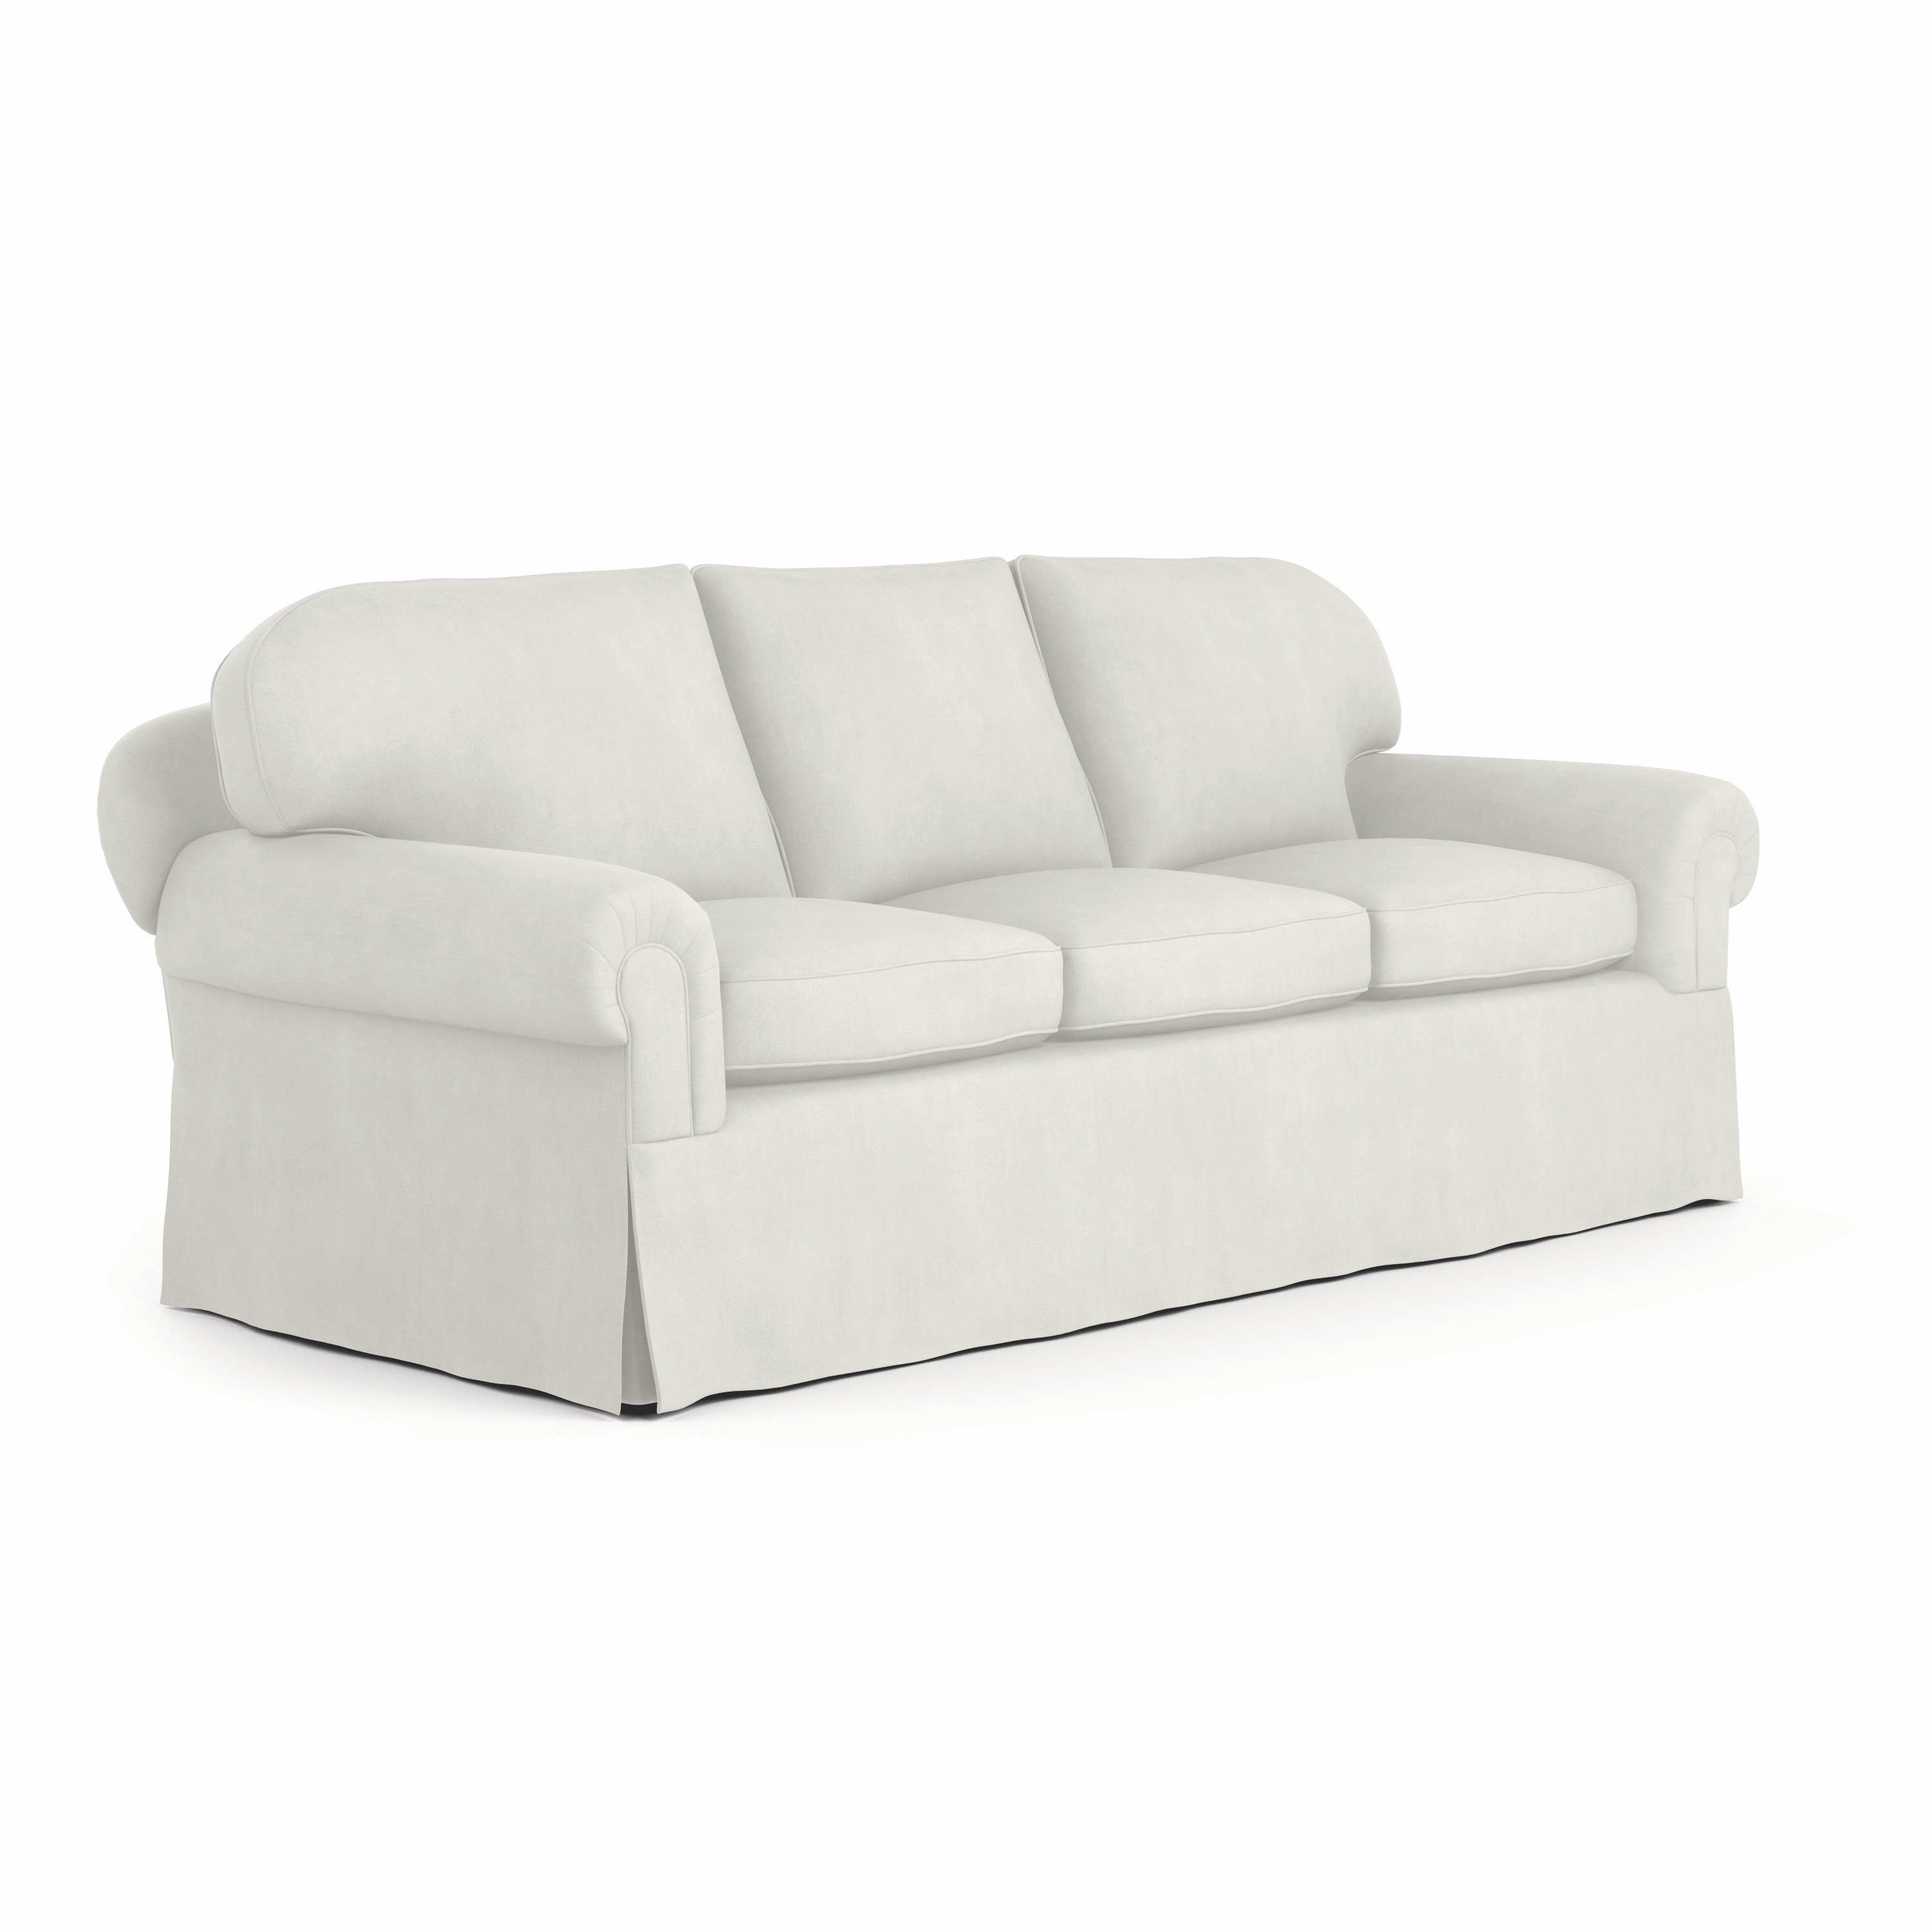 Brunschwig U0026 Fils Cavendish Loose Back Sofa BR 2004.